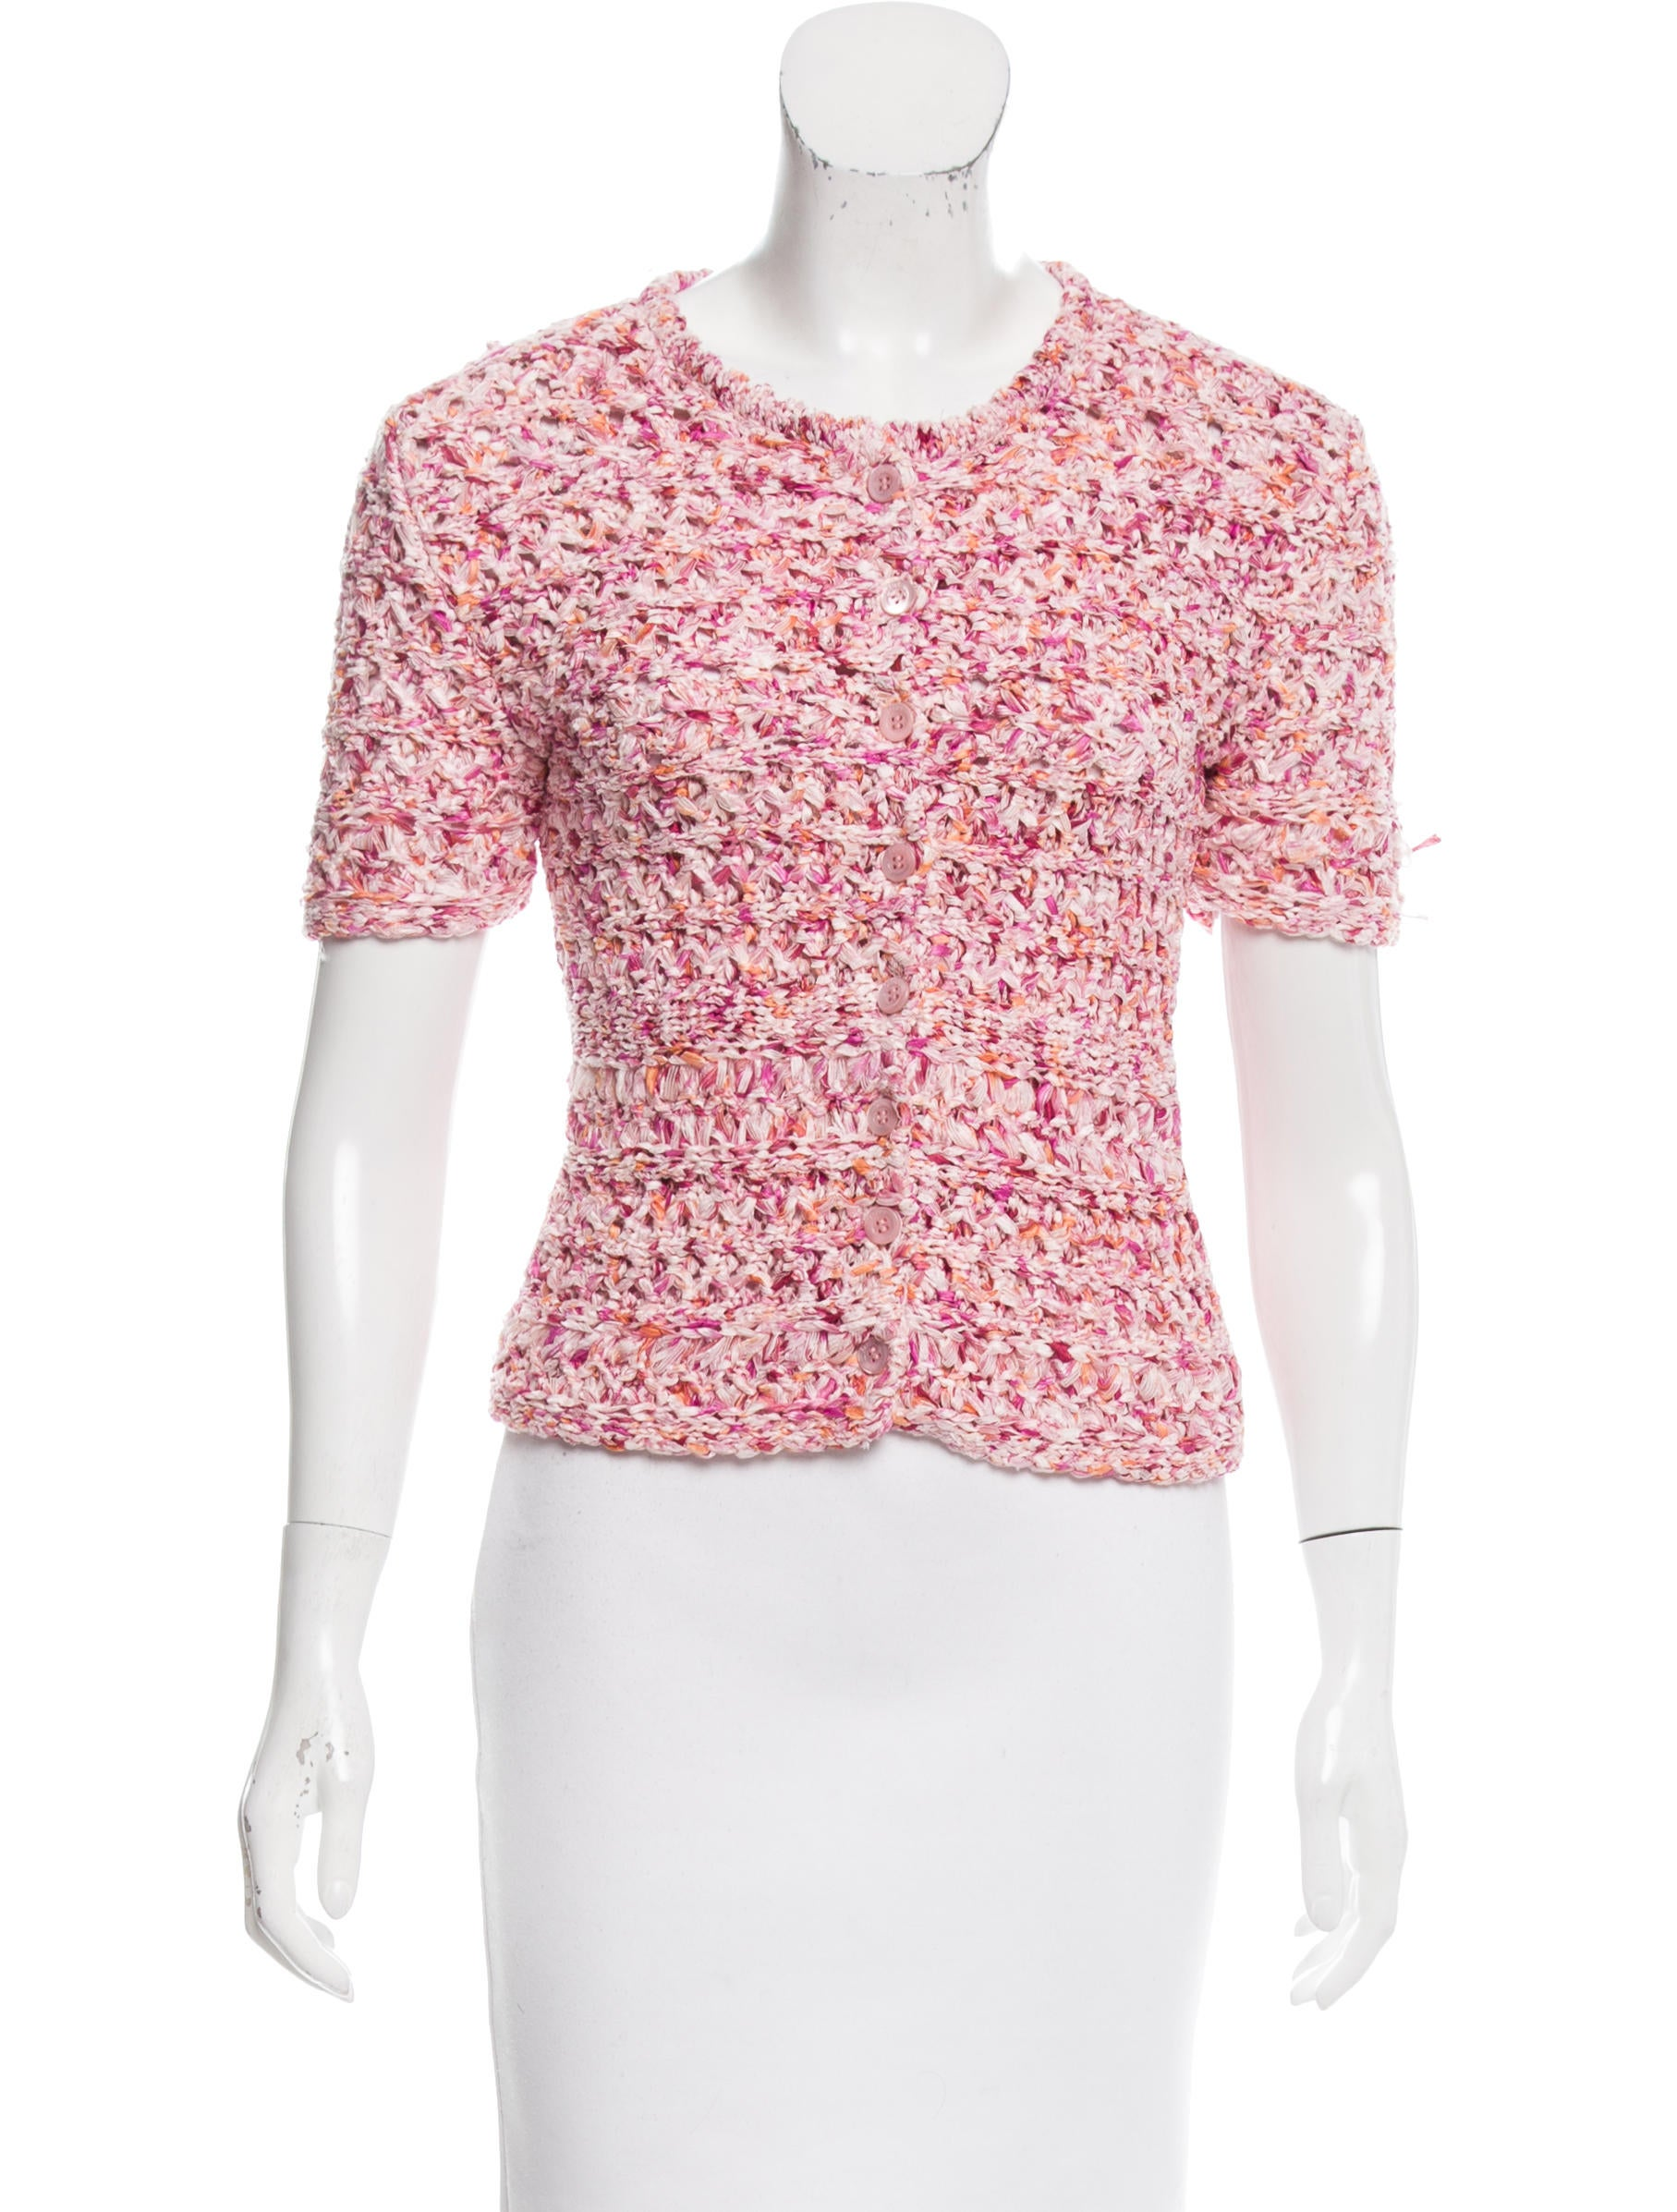 Christian dior woven button up top clothing chr61150 for Christian dior button up shirt